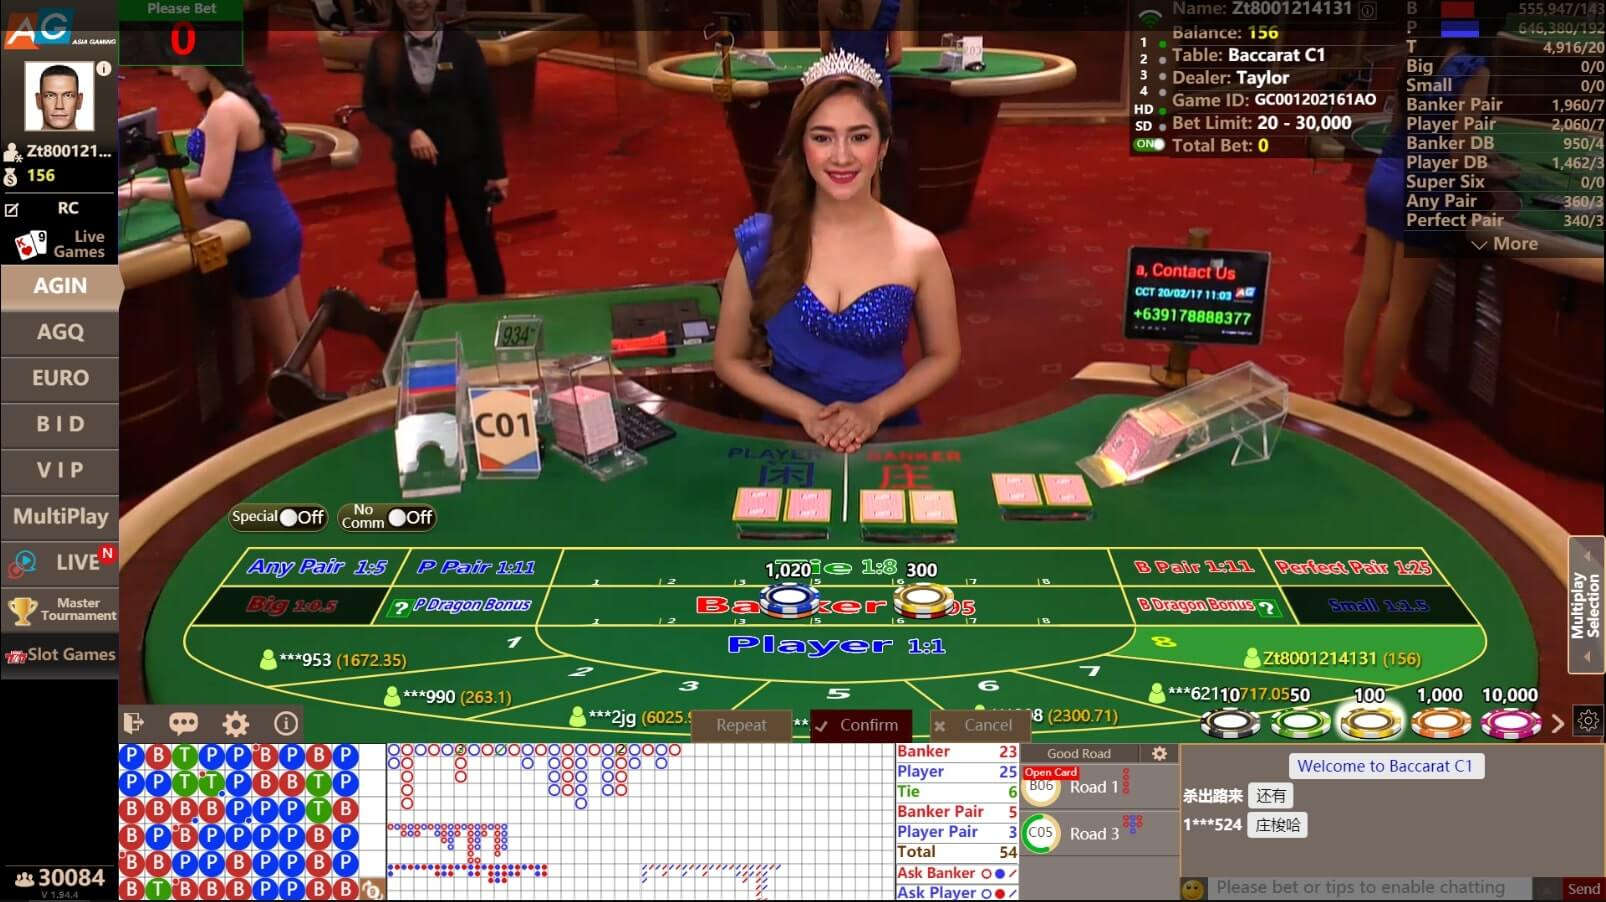 Asia gaming live baccarat